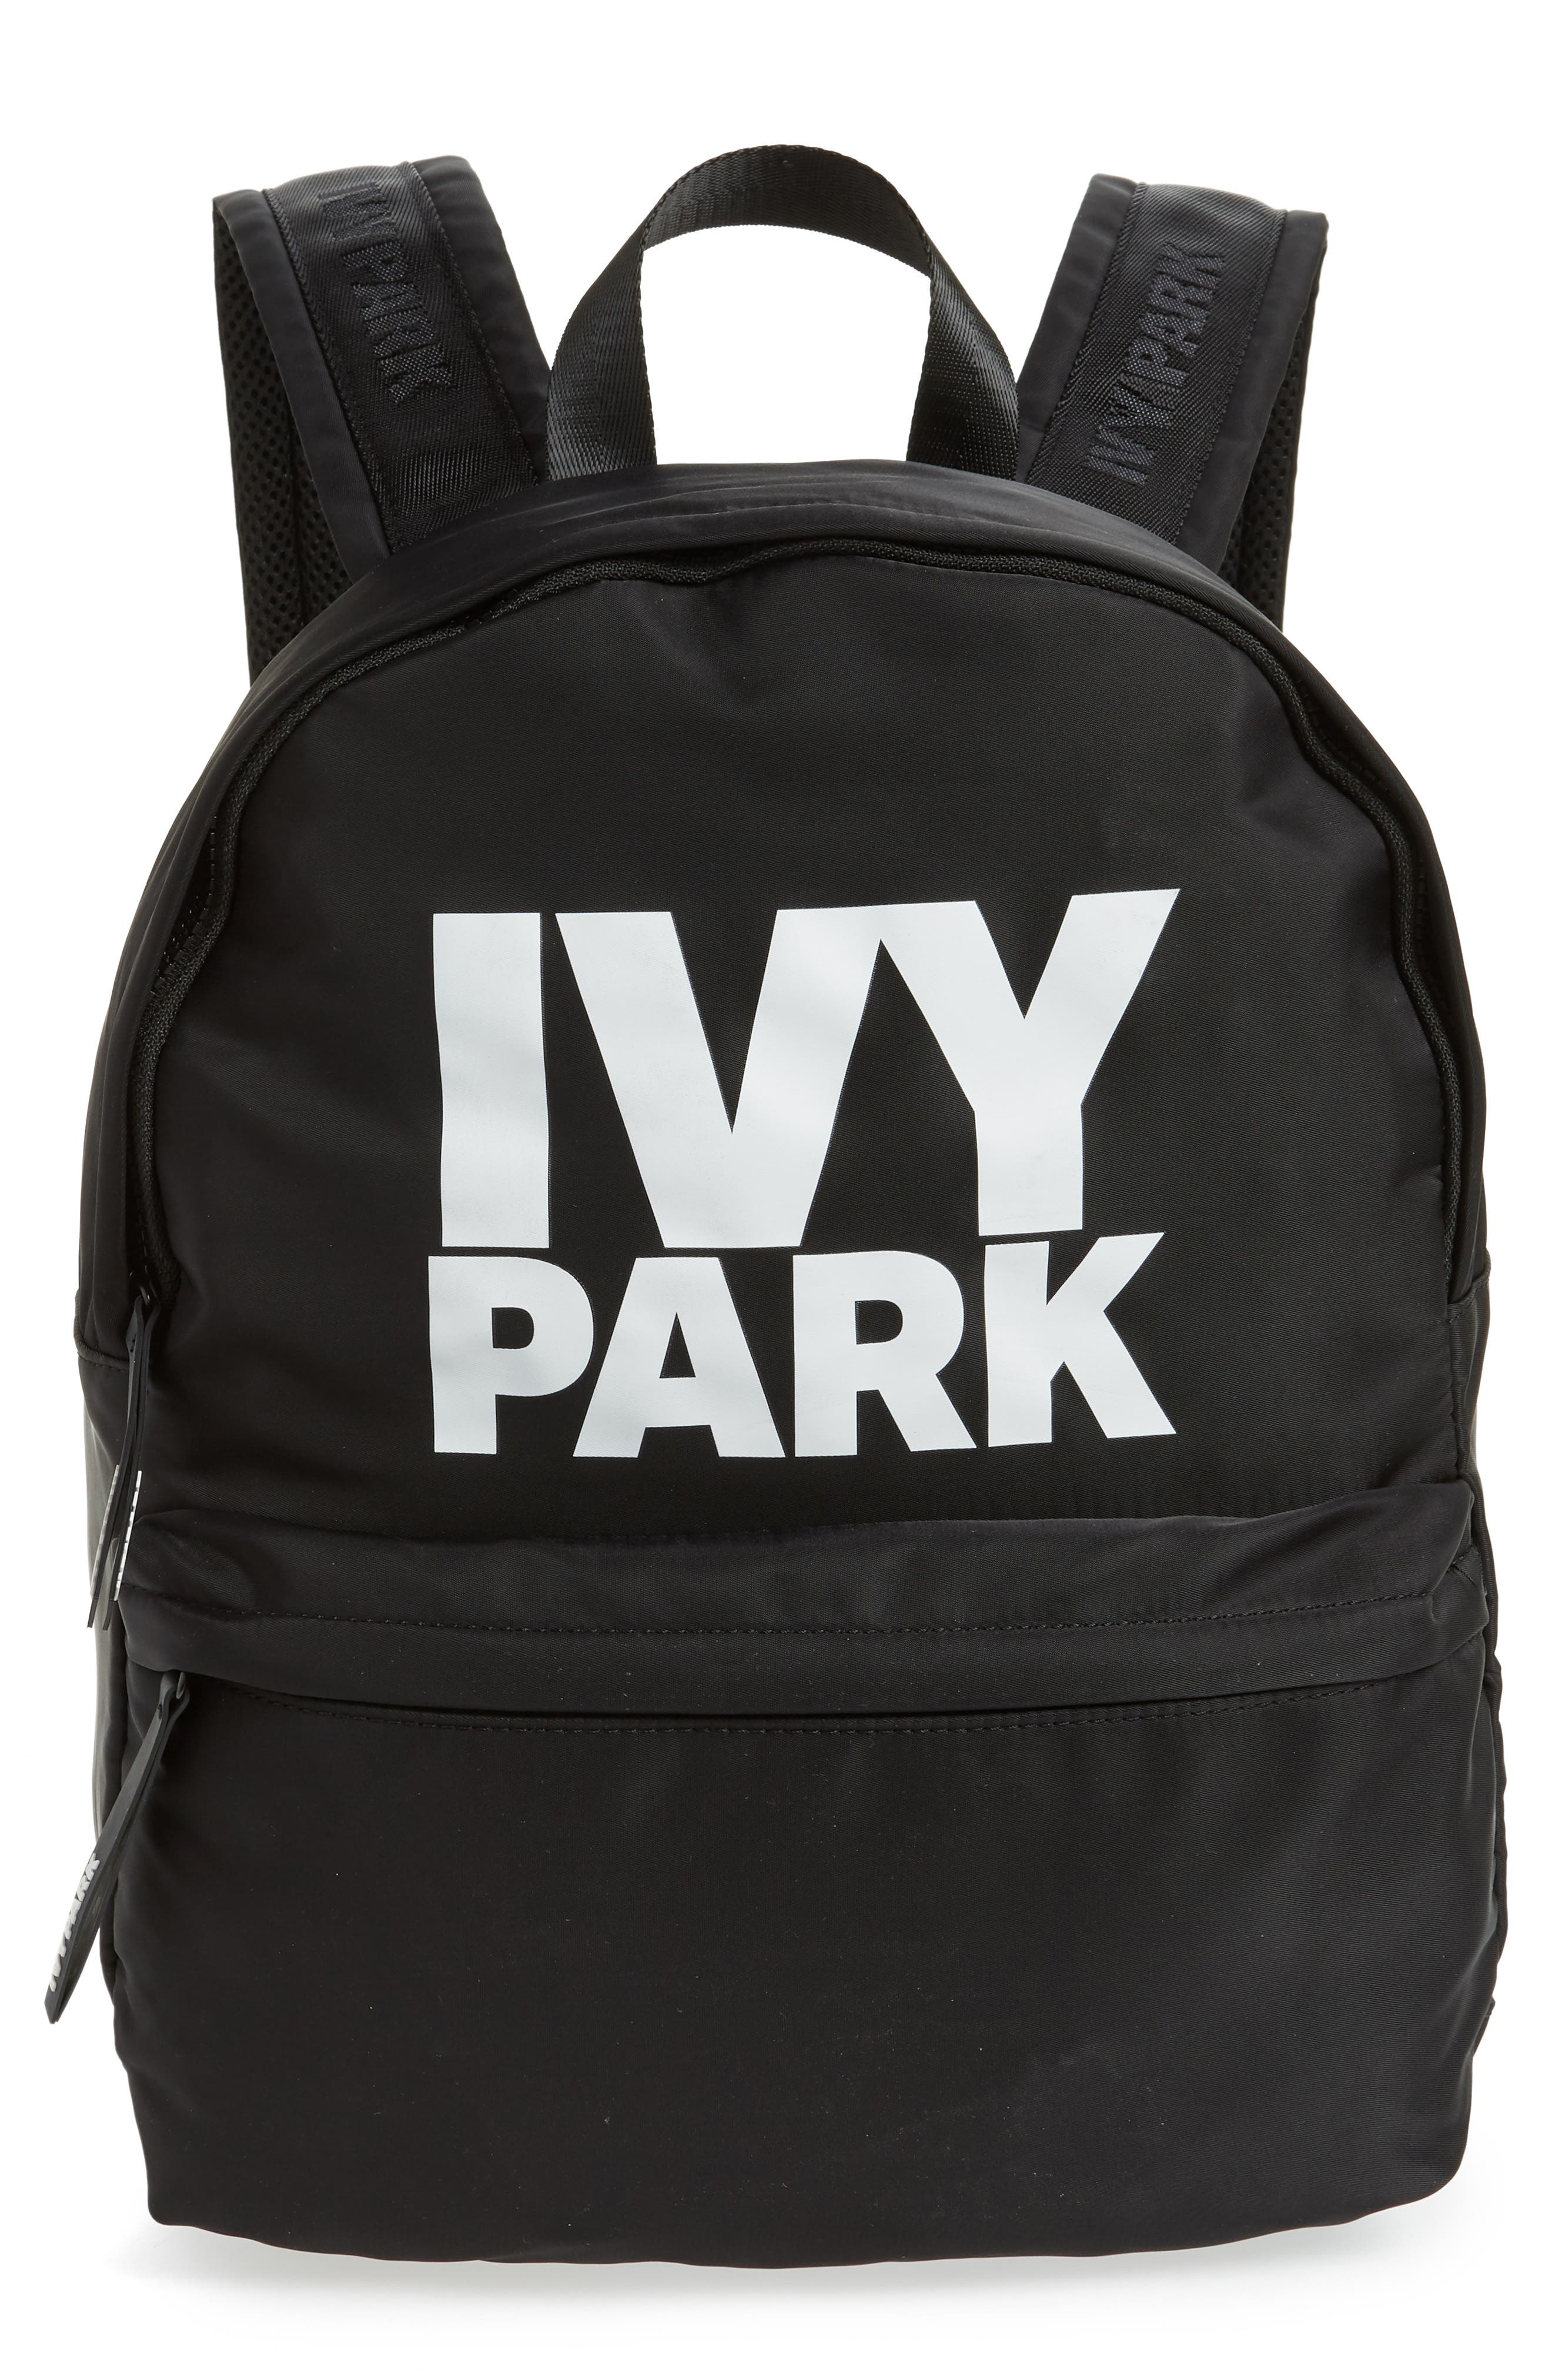 IVY PARK<SUP>®</SUP> Ivy Park Layered Logo Backpack, Main, color, 001